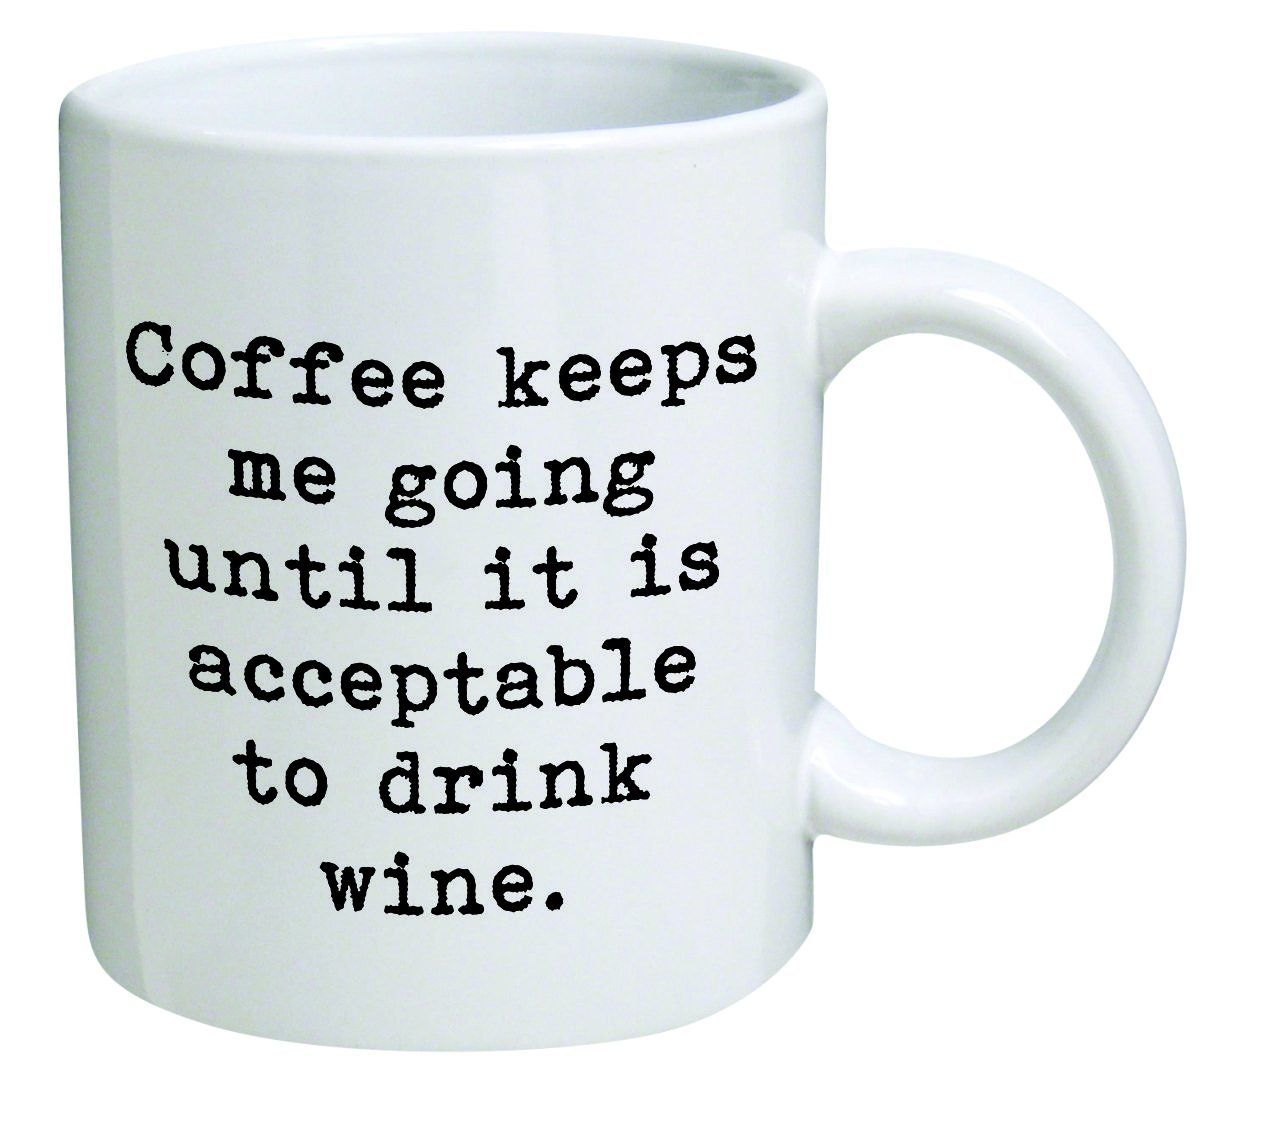 Coffee keeps me going until it is acceptable